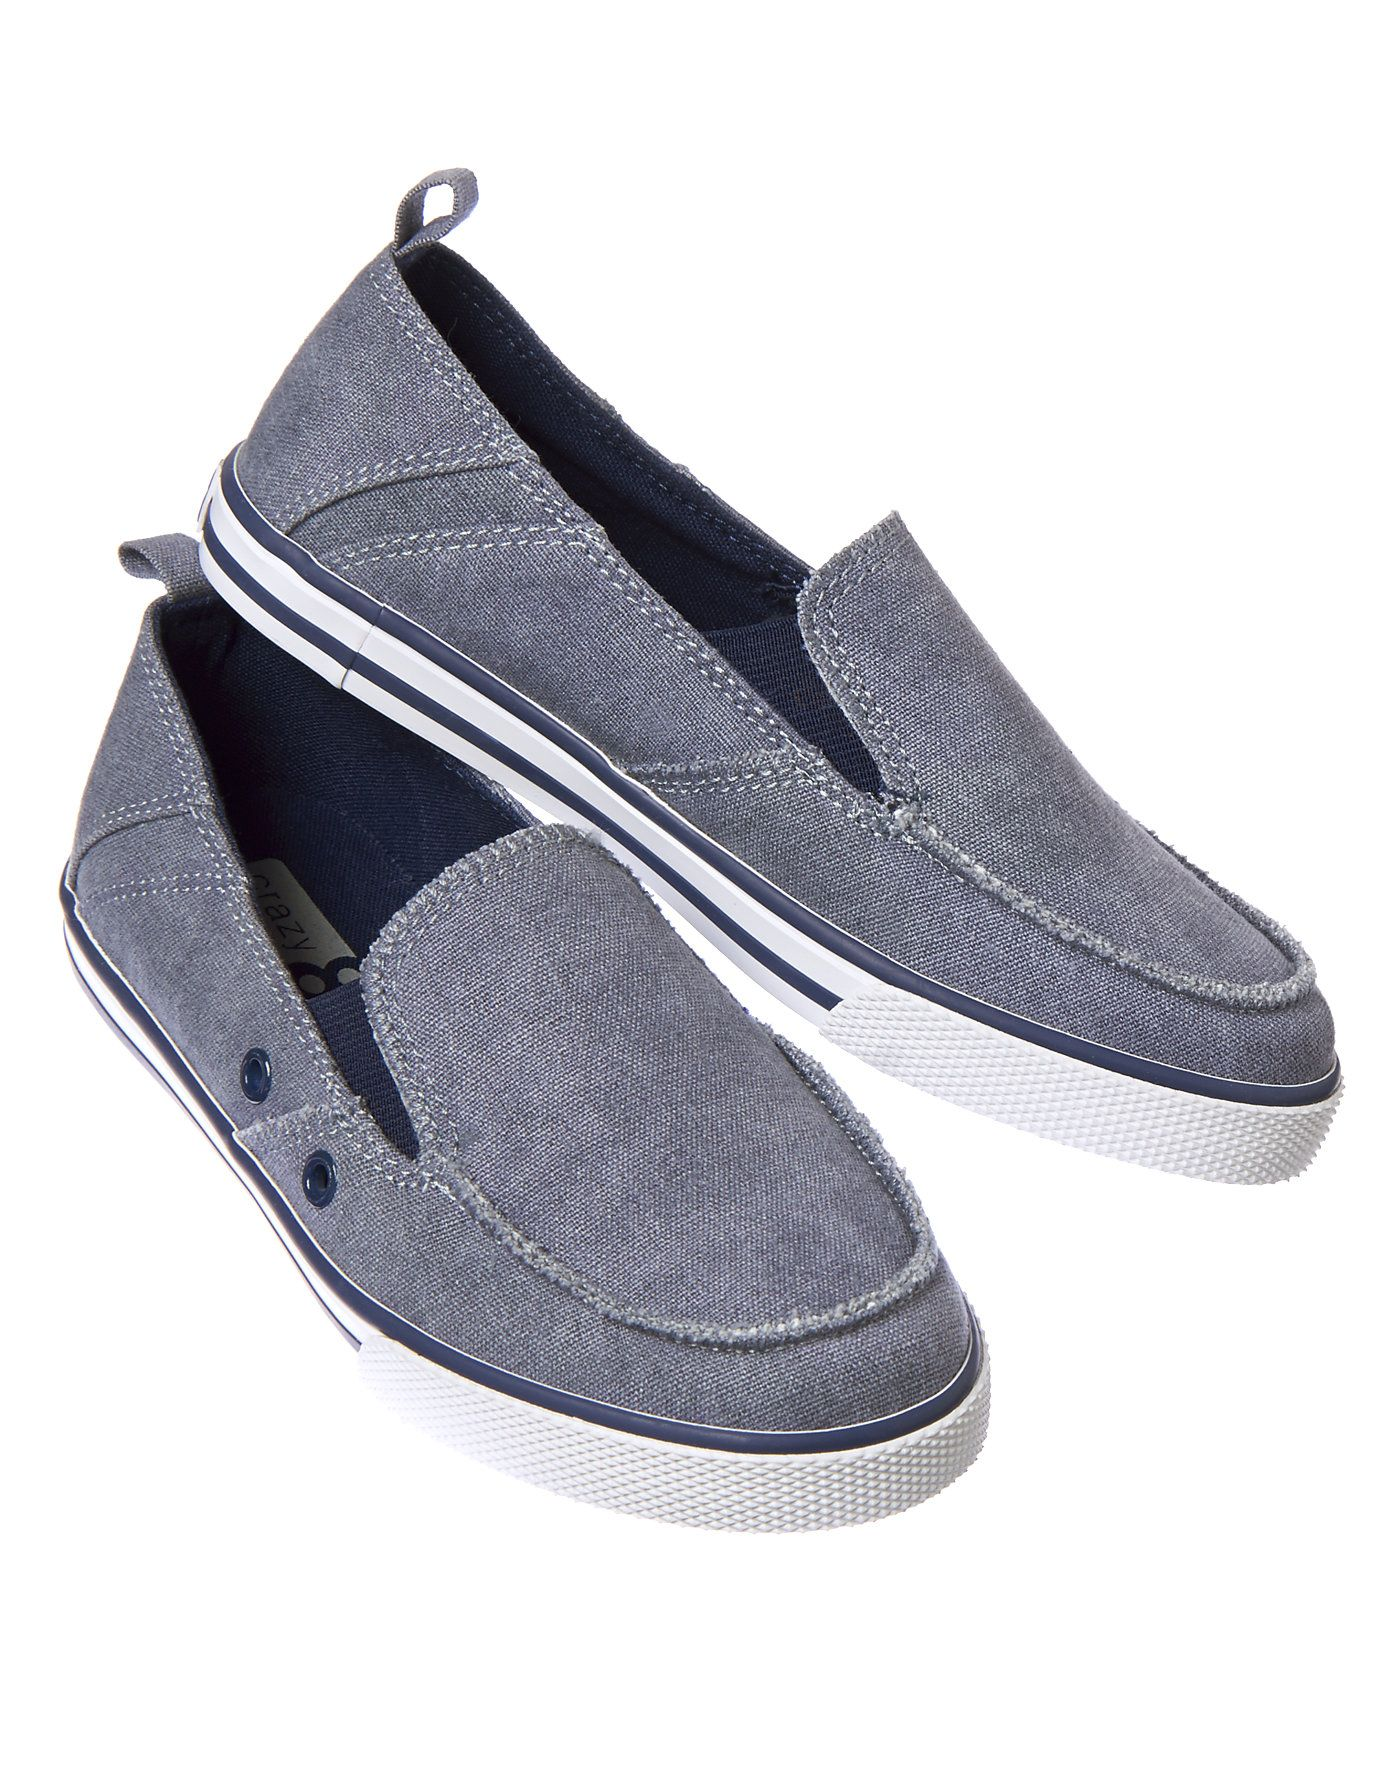 Chambray Slip-On Sneakers at Crazy 8